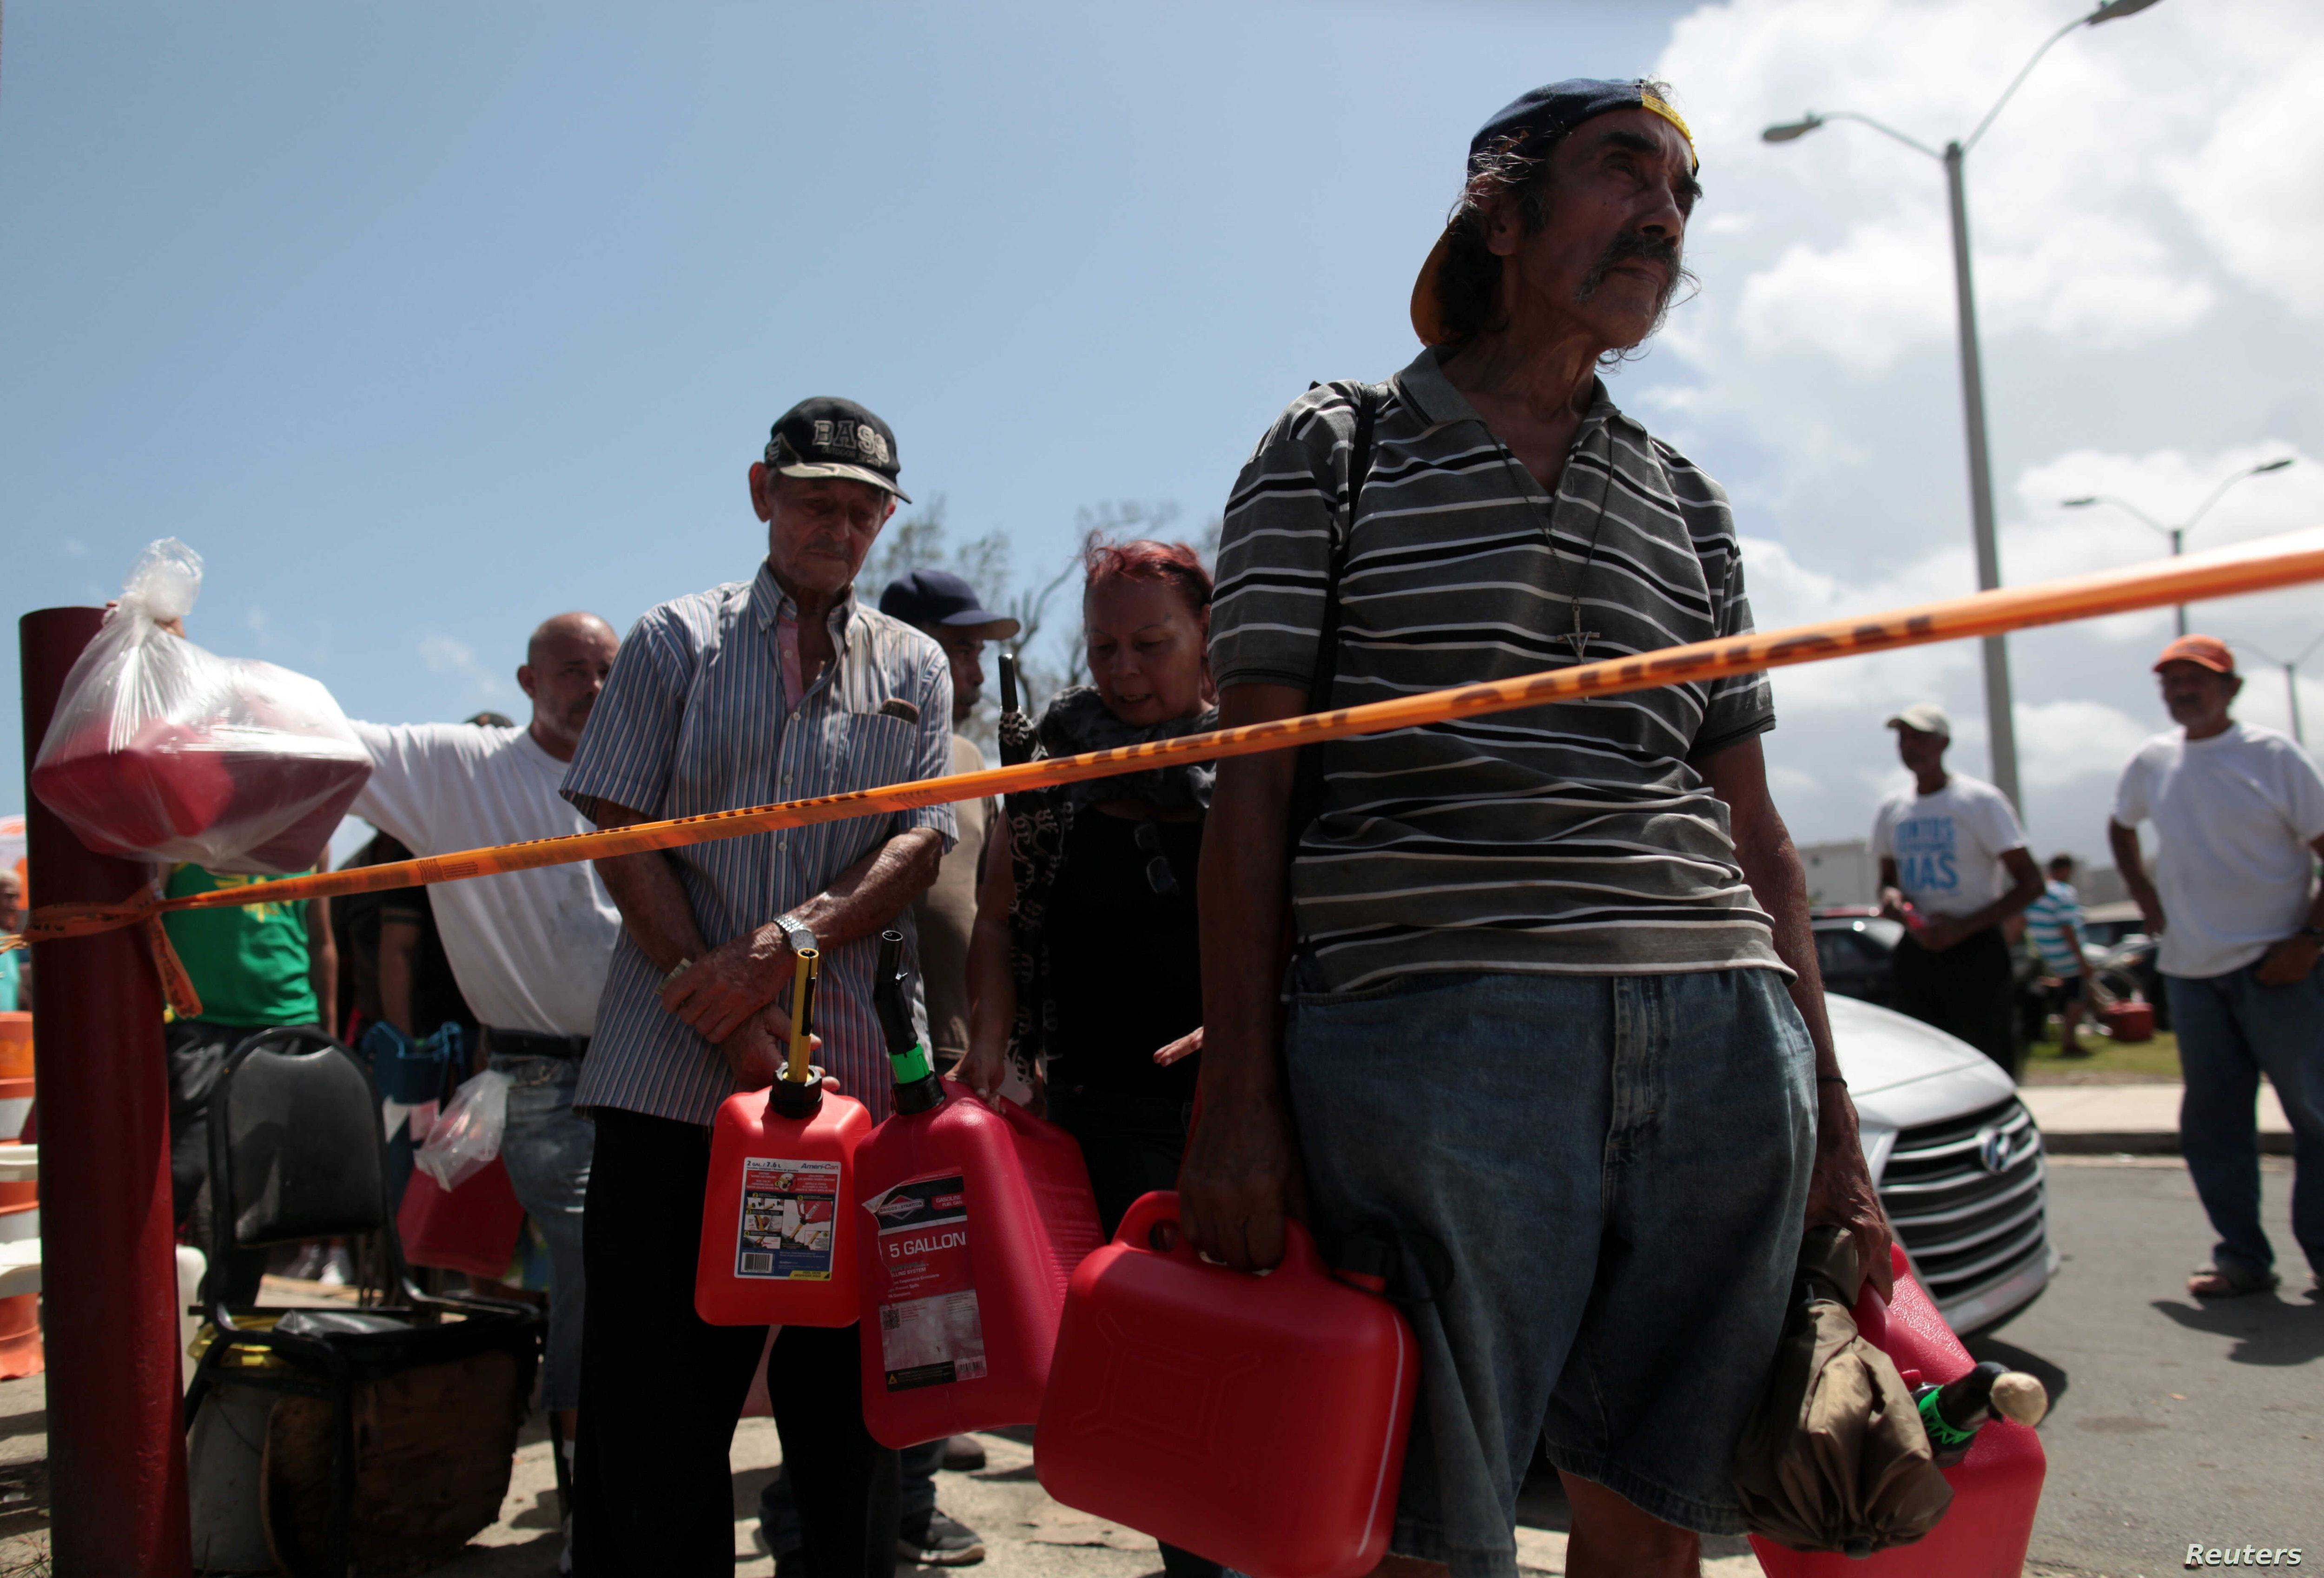 People queue at a gas station to fill up their fuel containers, after the island was hit by Hurricane Maria, in San Juan, Puerto Rico Sept. 28, 2017.